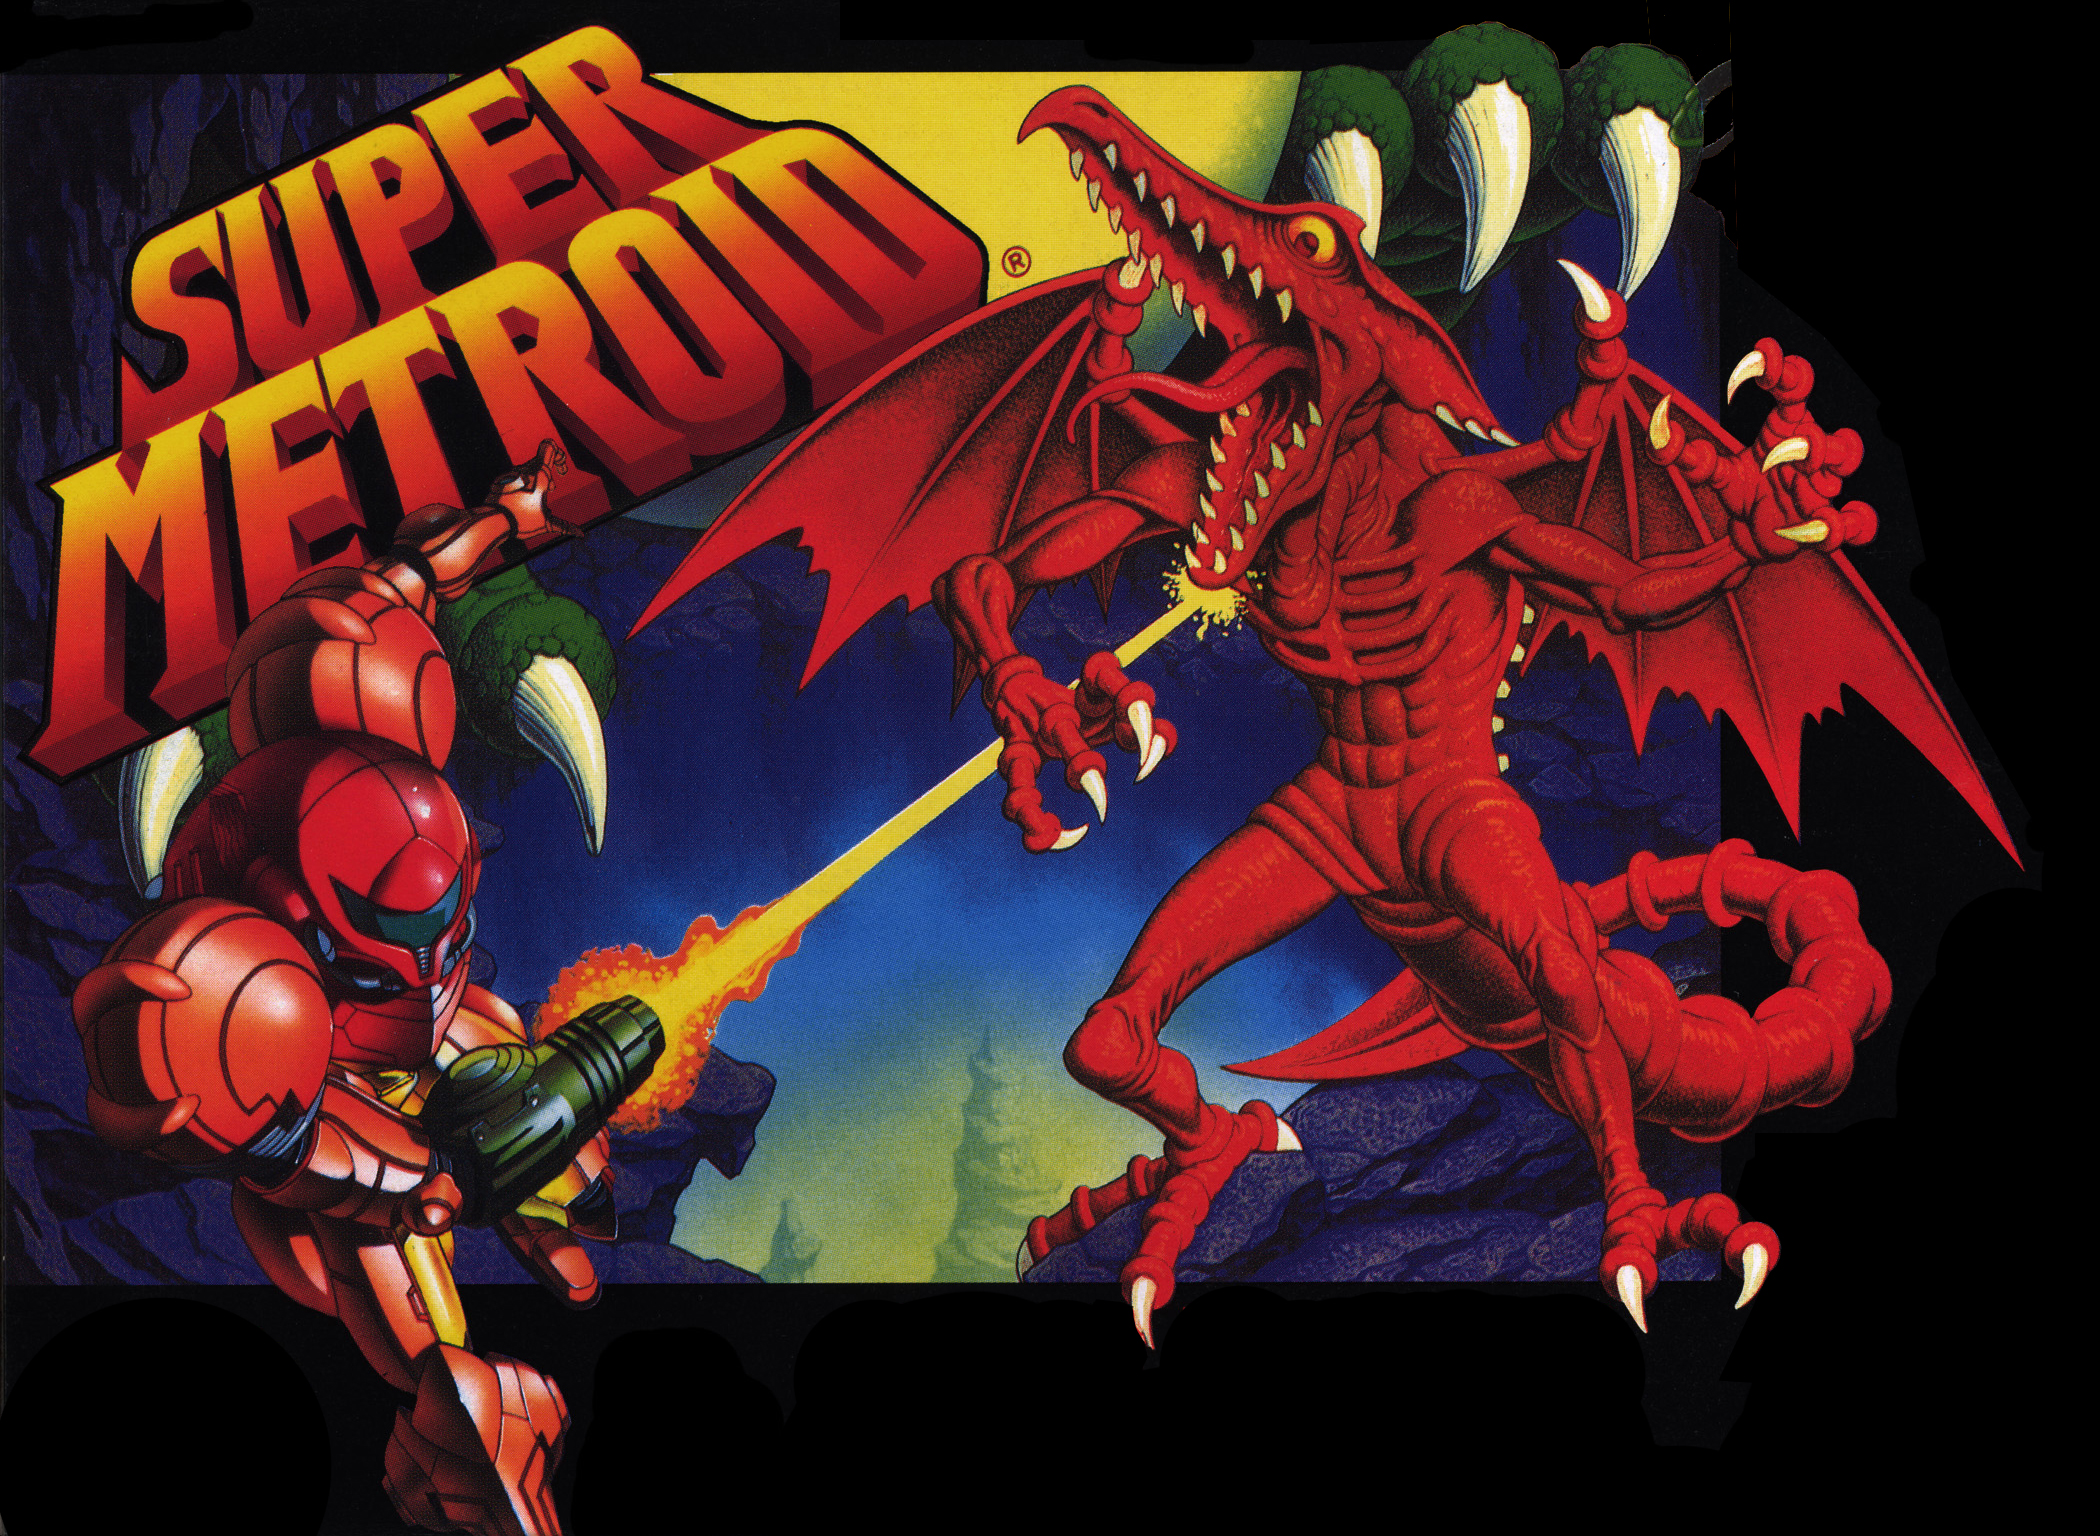 Super Metroid – absolute perfection